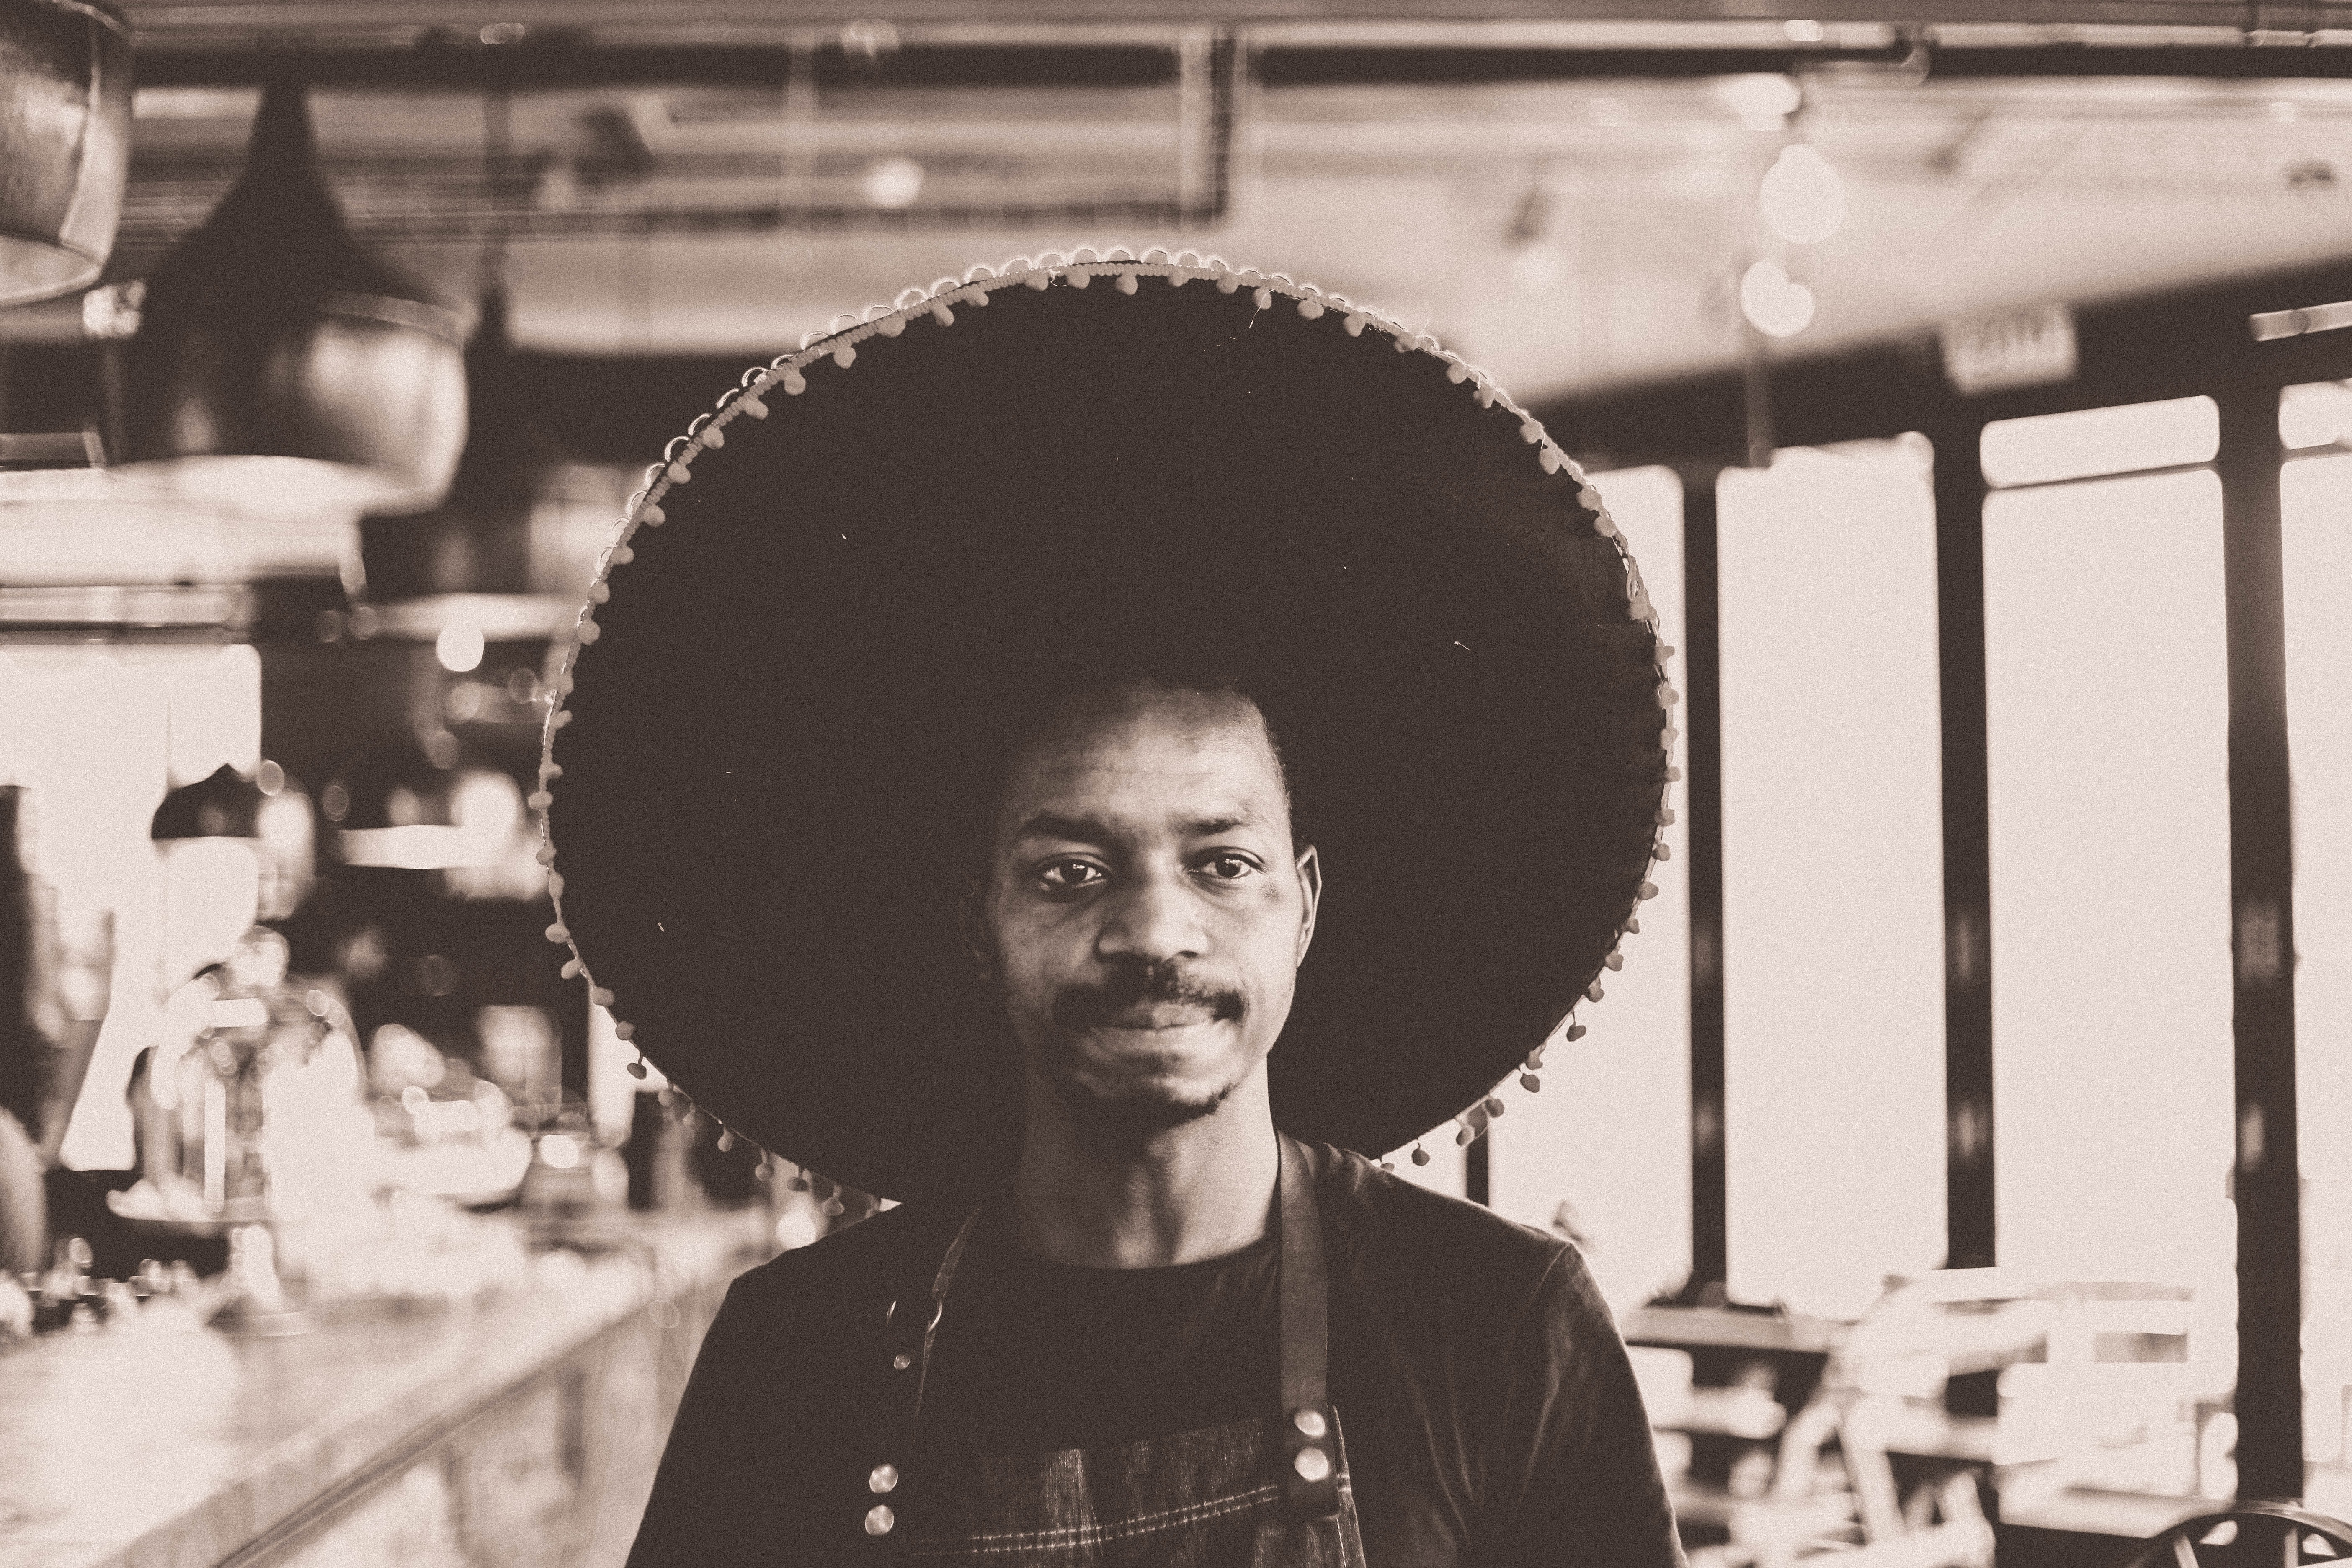 grayscale photo of man wearing sombrero